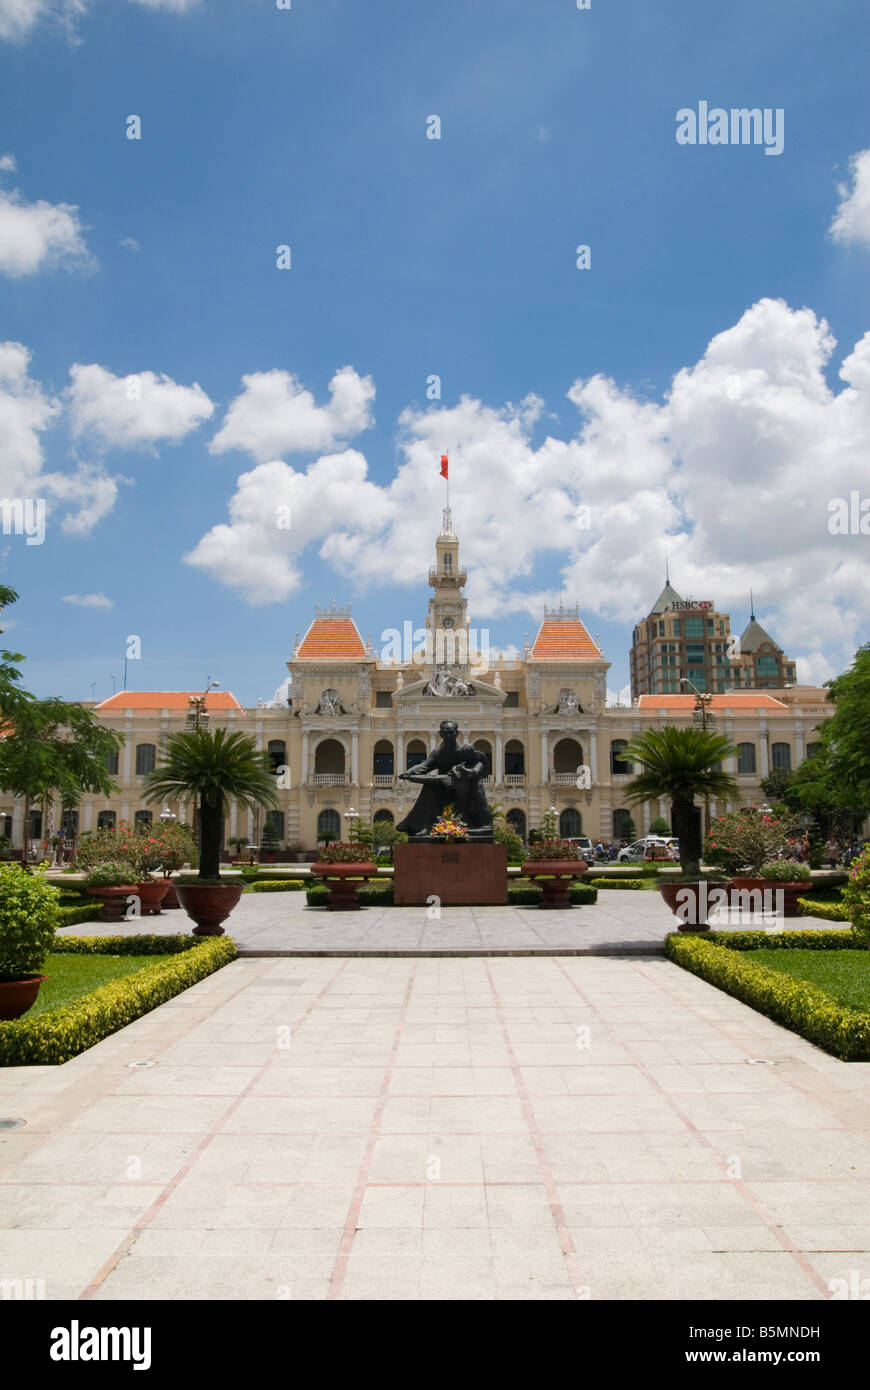 Ornate facade of the People's Committee Building, Ho Chi Minh City Hall, Ho Chi Minh City, Vietnam - Stock Image